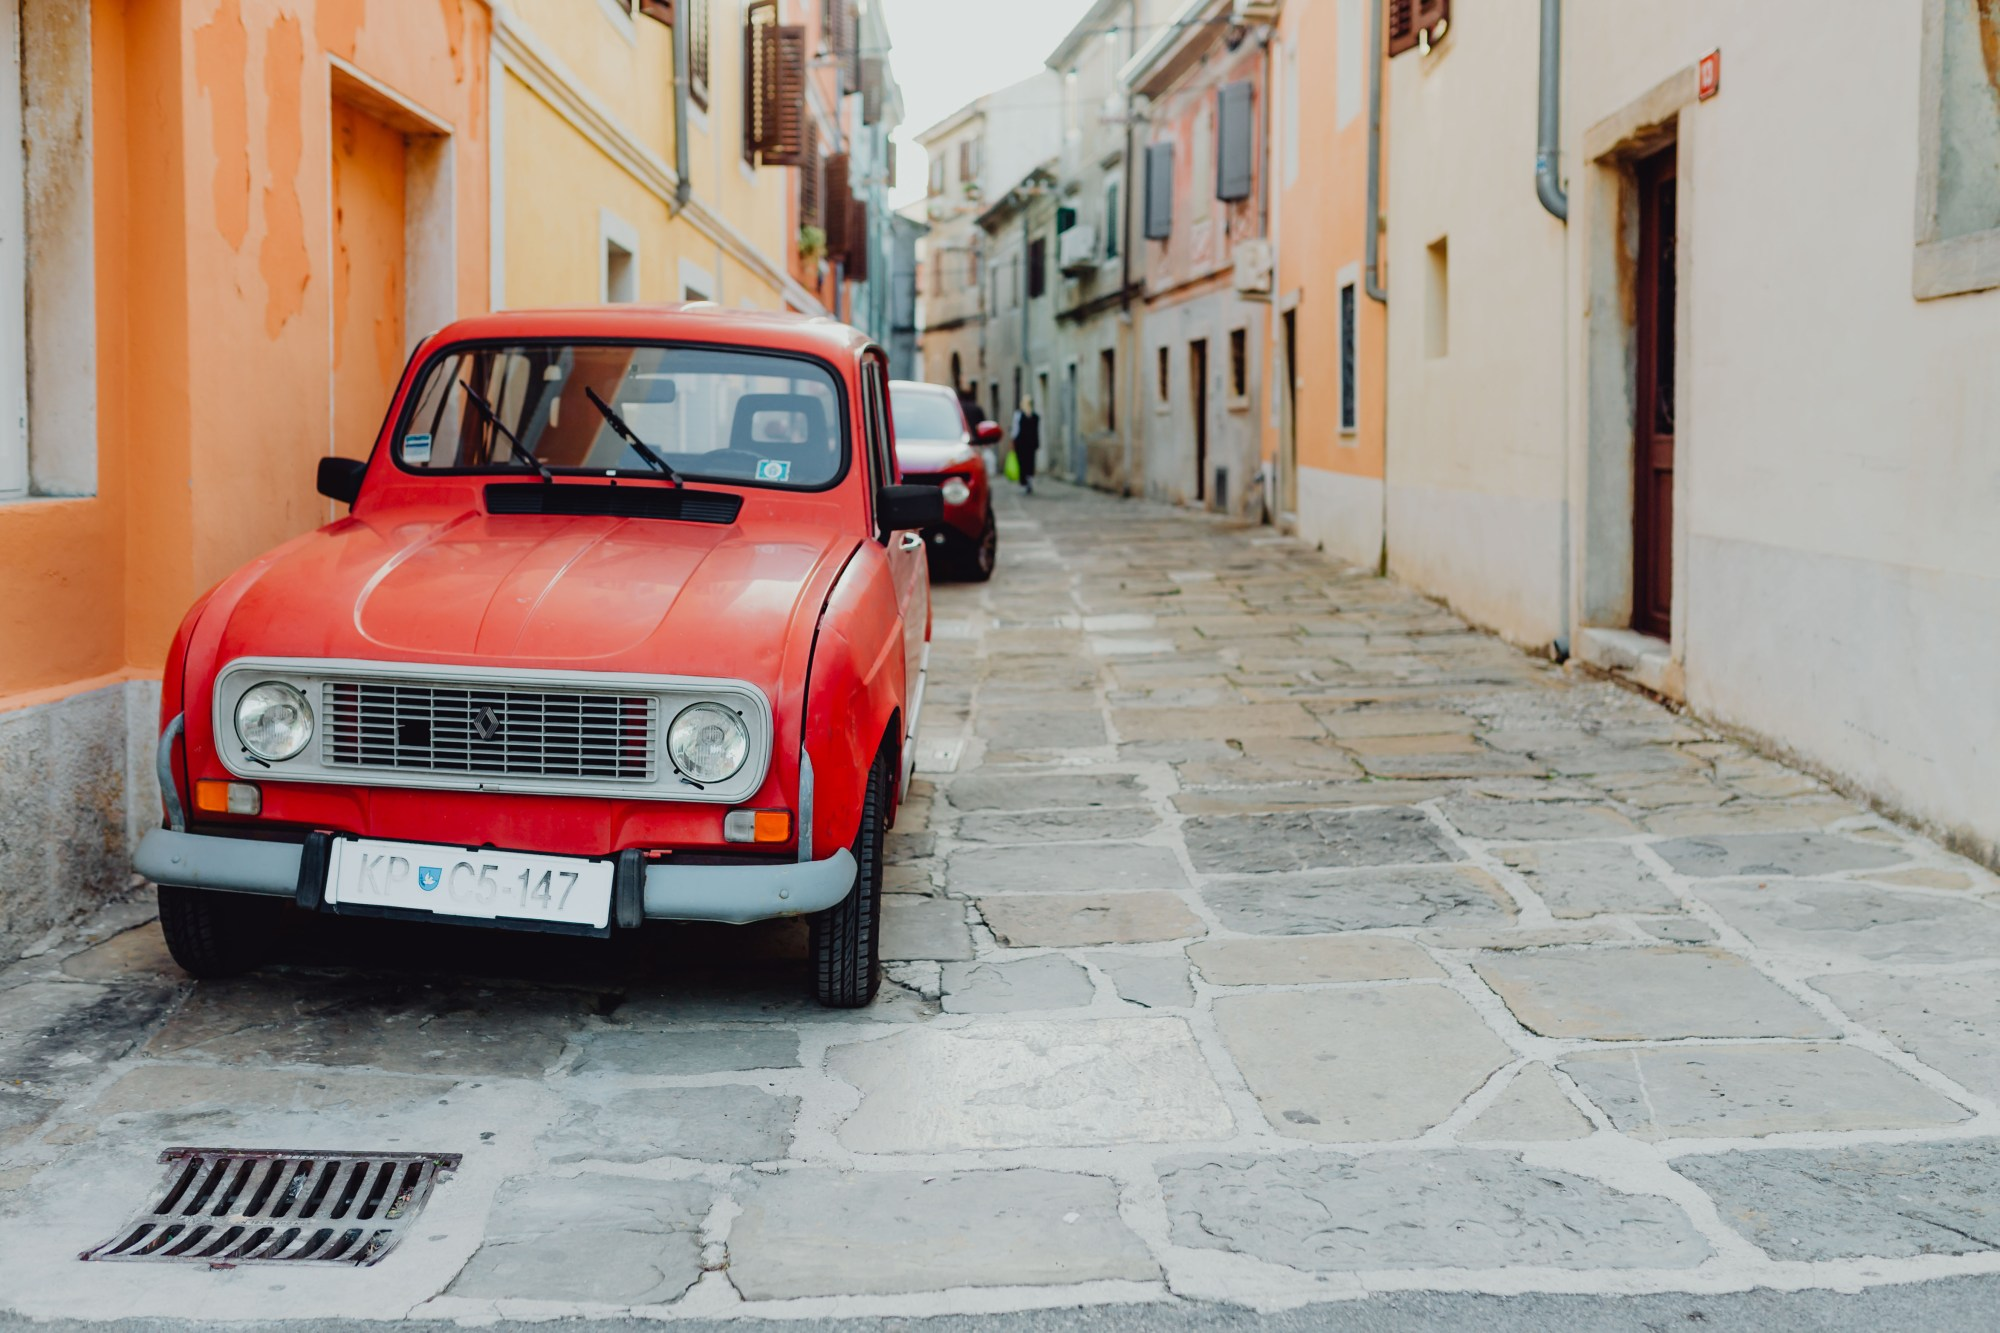 hight resolution of an old red renault 4 car parked on the street in izola slovenia